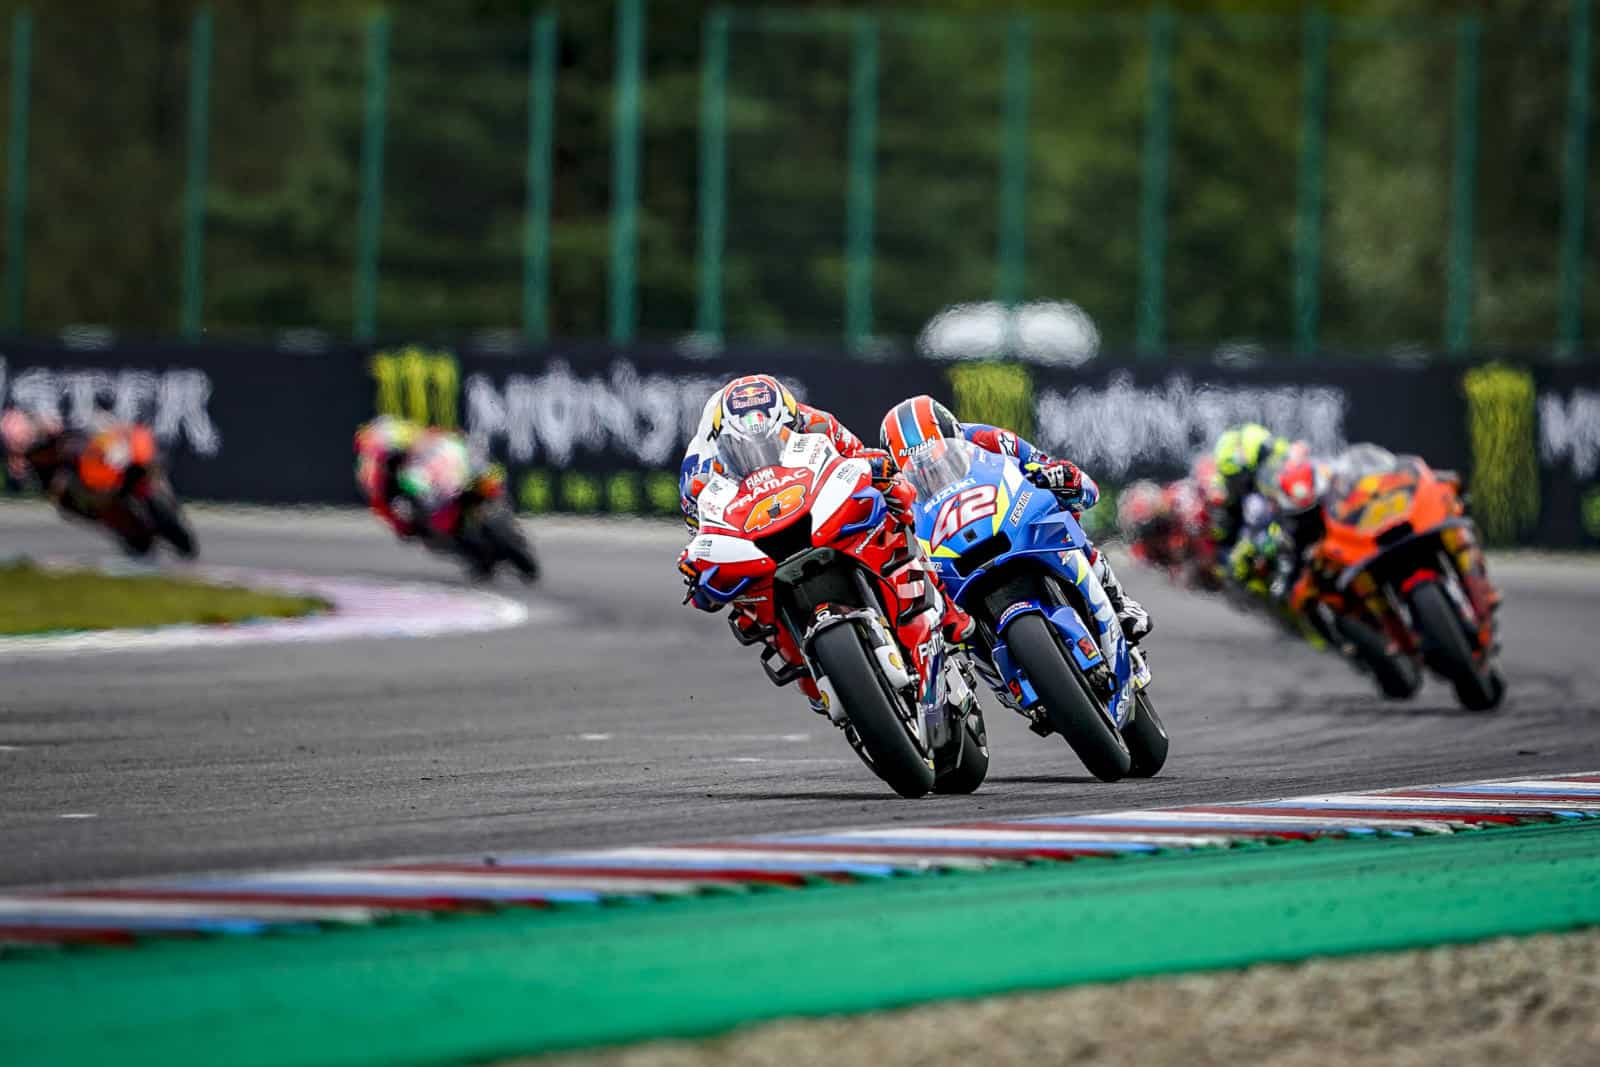 Jack Miller hoping for another big win for Ducati in MotoGP Austria Grand Prix following success at Brno